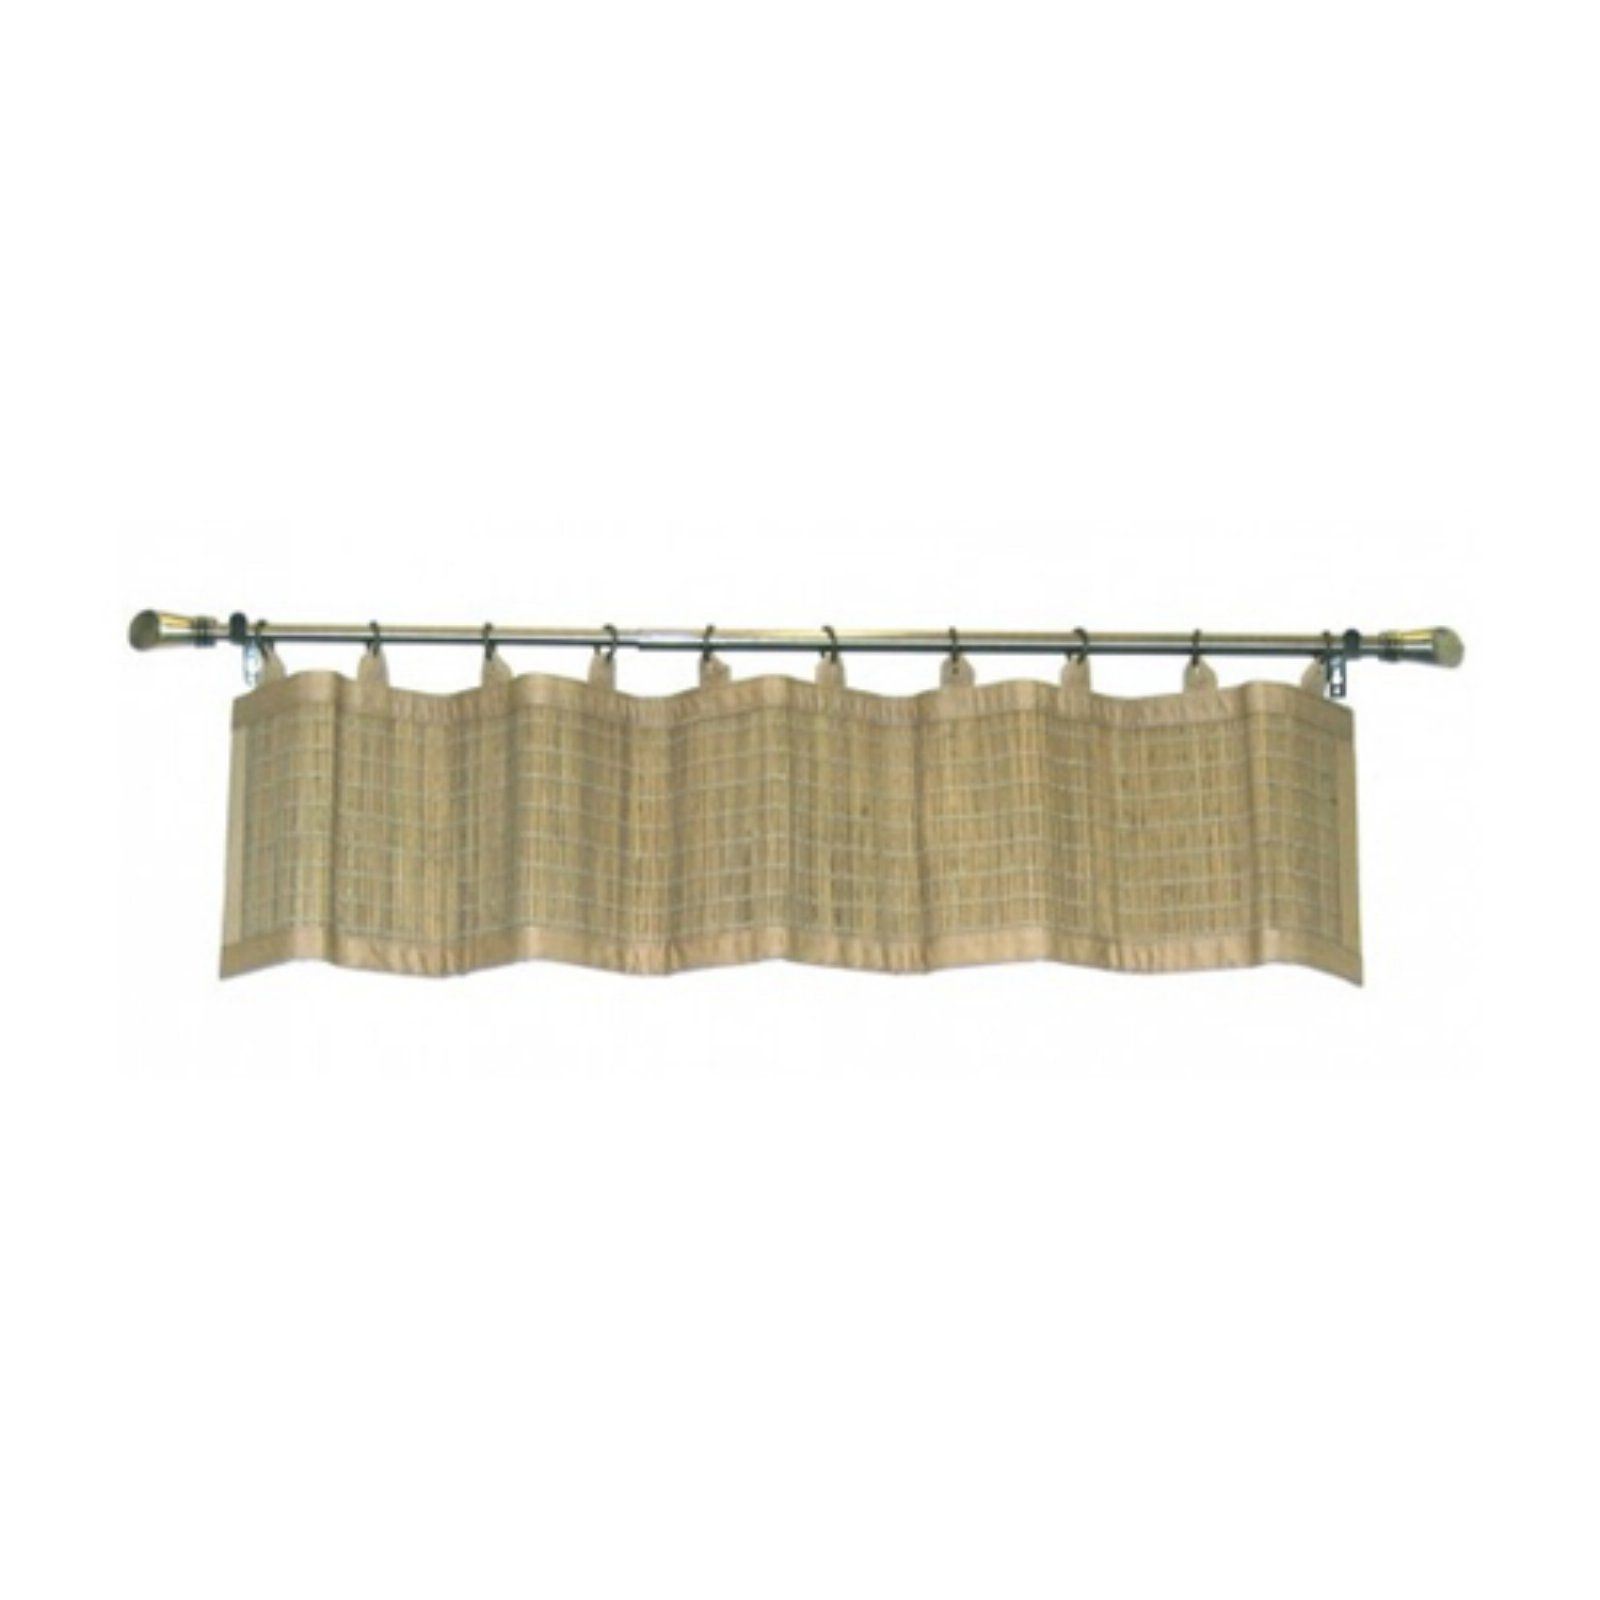 Versailles Home Fashions BPU147212-9 Bamboo Wood Valance with Grommets 72-Inch x 12-Inch Teak